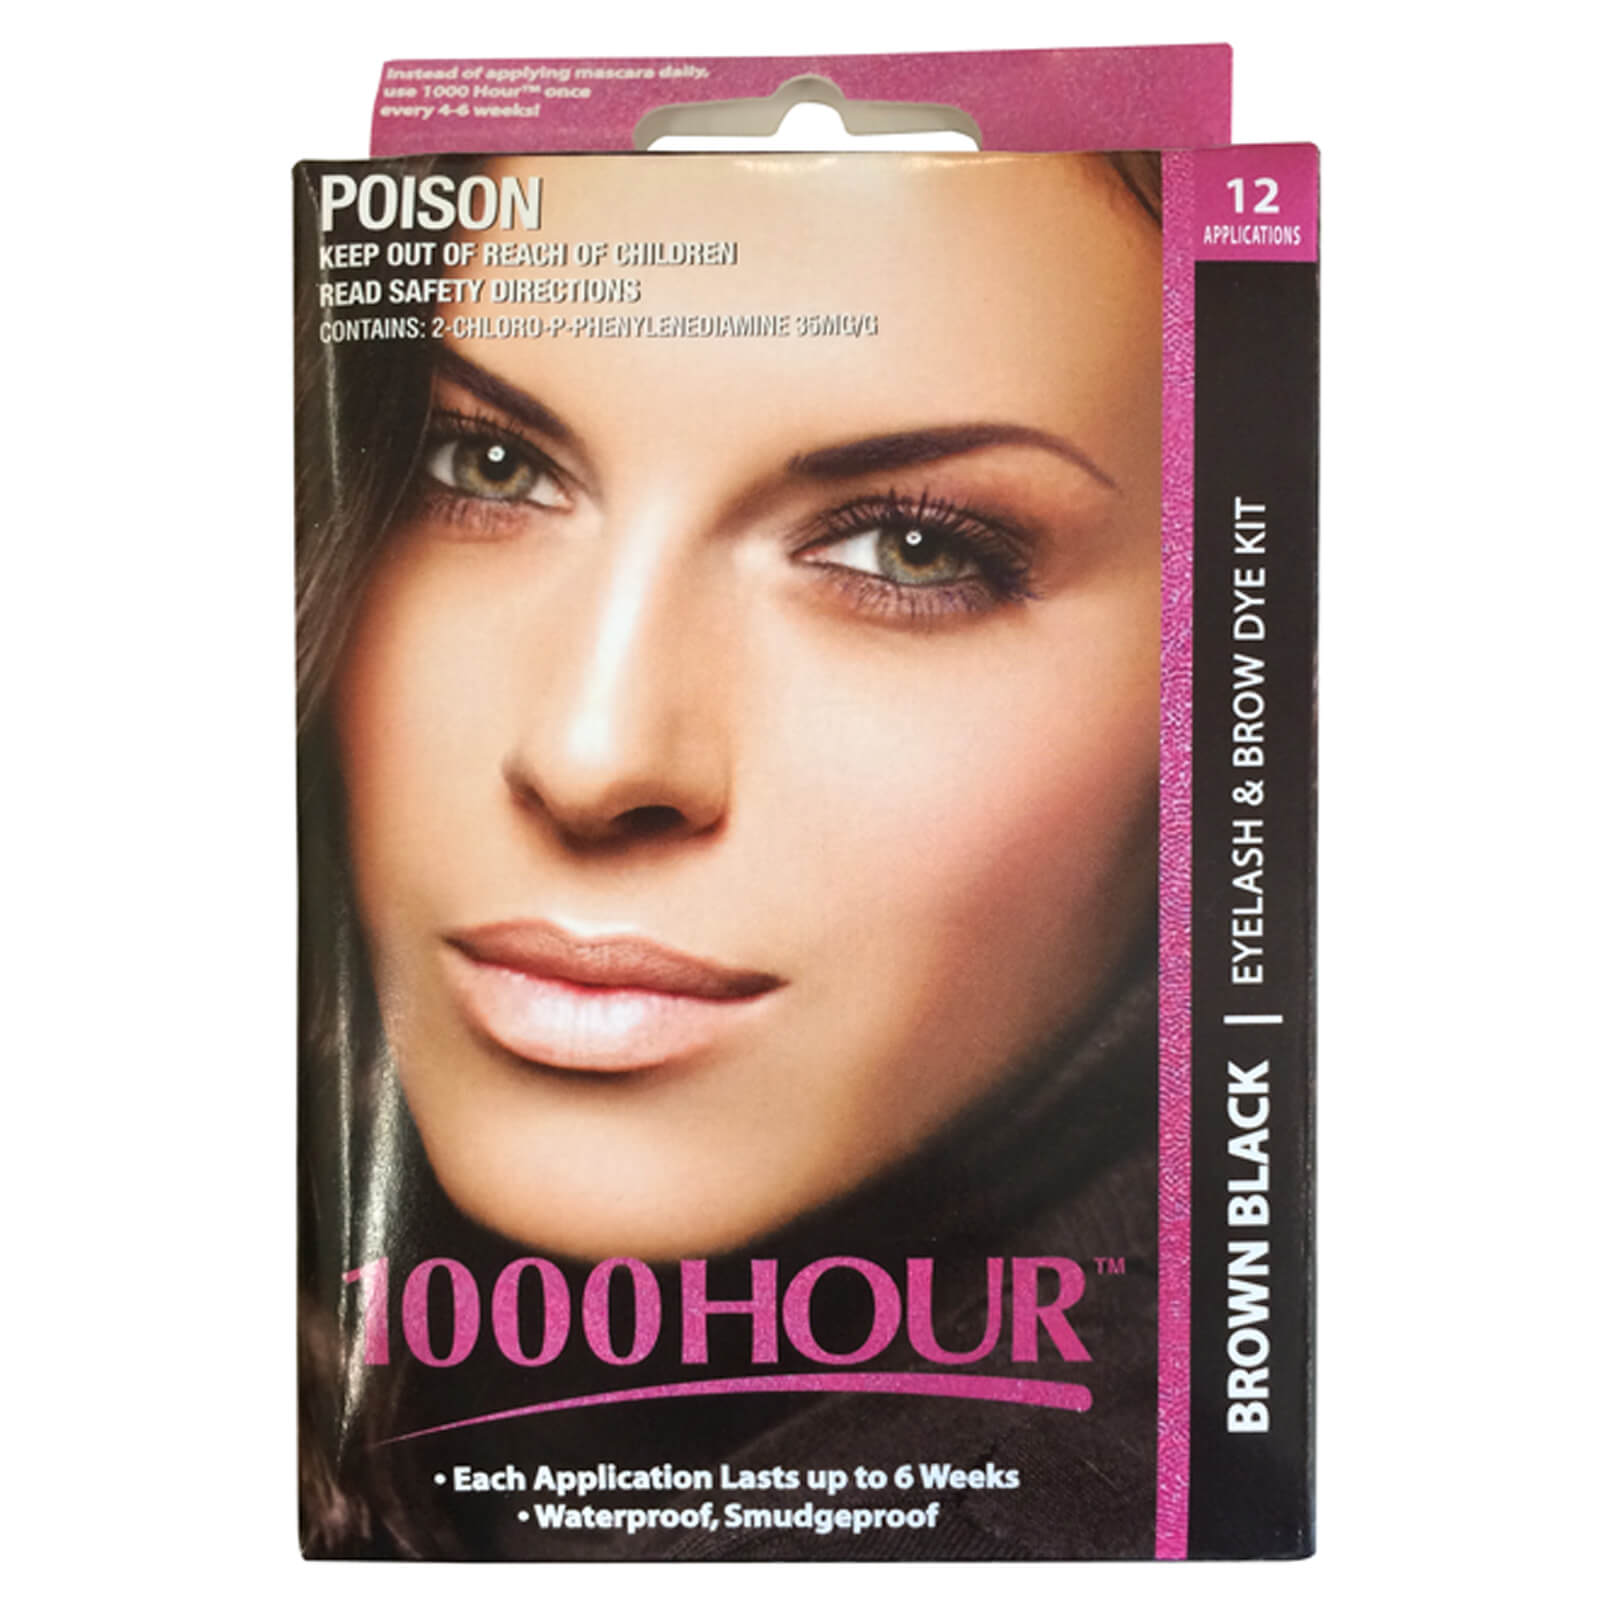 1000 Hour Eyelash & Brow Dye Kit - Brown Black